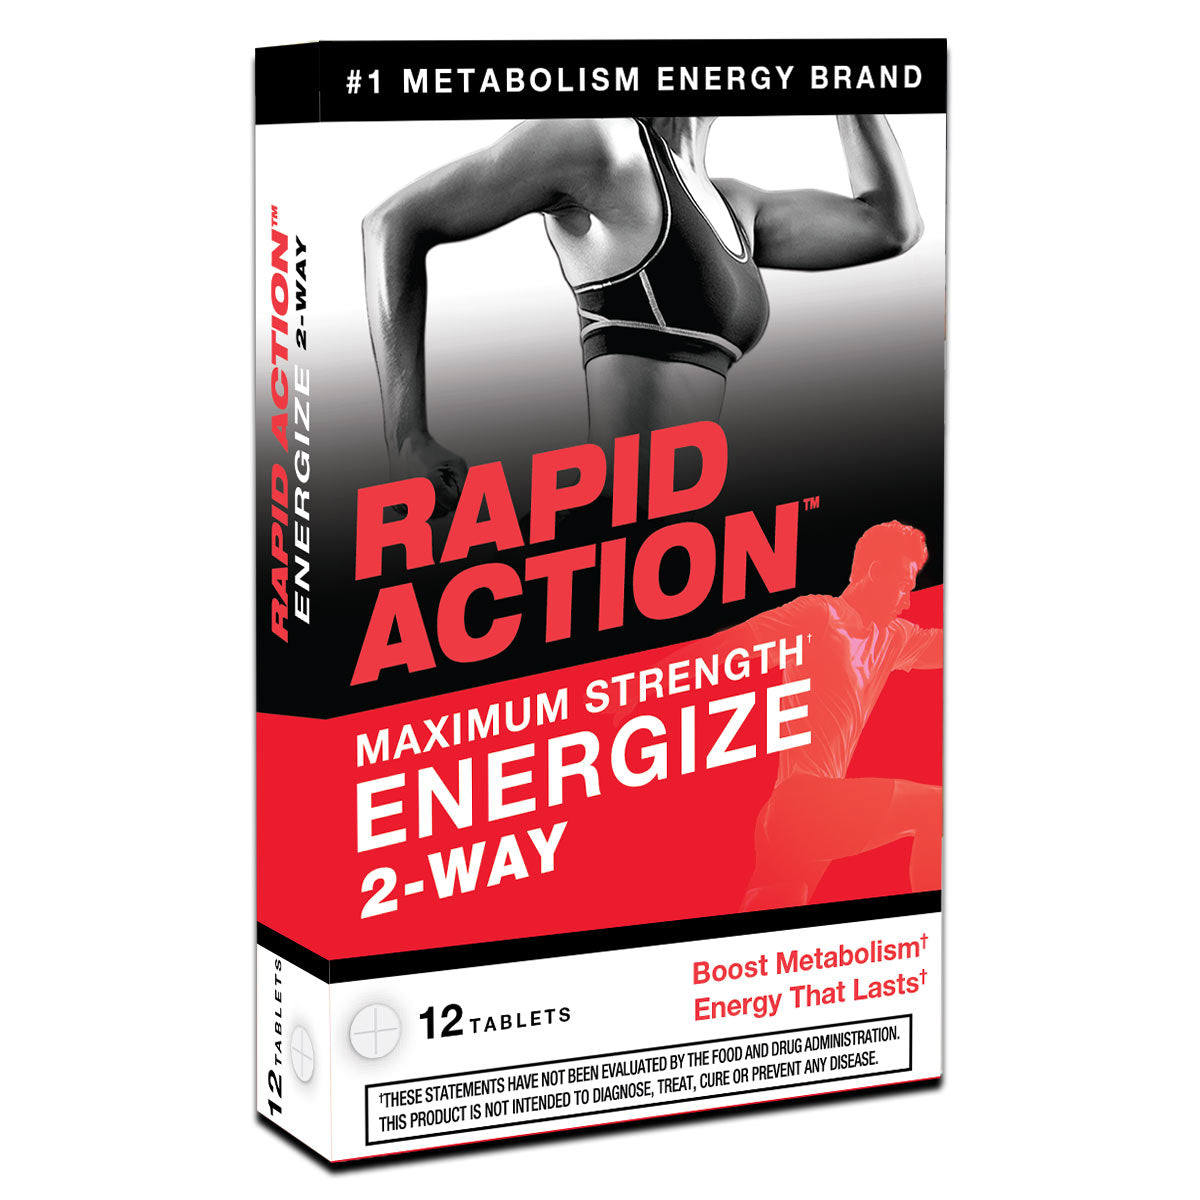 Description Ingredients Why Buy From Us Delivery and ReturnsRapid Action is the fastest growing energy brand on the market and is a top selling dietary supplement. With over a million units sold, you can be assured of a great quality product.Rapid Action ENERGIZE 2-Way provides an extra energy boost that fights fatigue, brings back focus, and just makes you feel like you again! Get theendurance tofulfill all your daily activities, as well as speed up your metabolism. (1 Blisters of 12 Tablets) 12 Count  Increases Energy  Maximum StrengthManufactured in the USABefore taking collagen any supplement, always talk with your physician first to ensure it will not interfere with any current prescription medicines or treatments.These statements have not been evaluated by the US Food & Drug Administration. This product is not intended to diagnose, treat, cure or prevent any disease.Ingredients: Proprietary energy blendincluding B12, Magesium and Zinc.Other Ingredients: Methylephethine, Black Pe